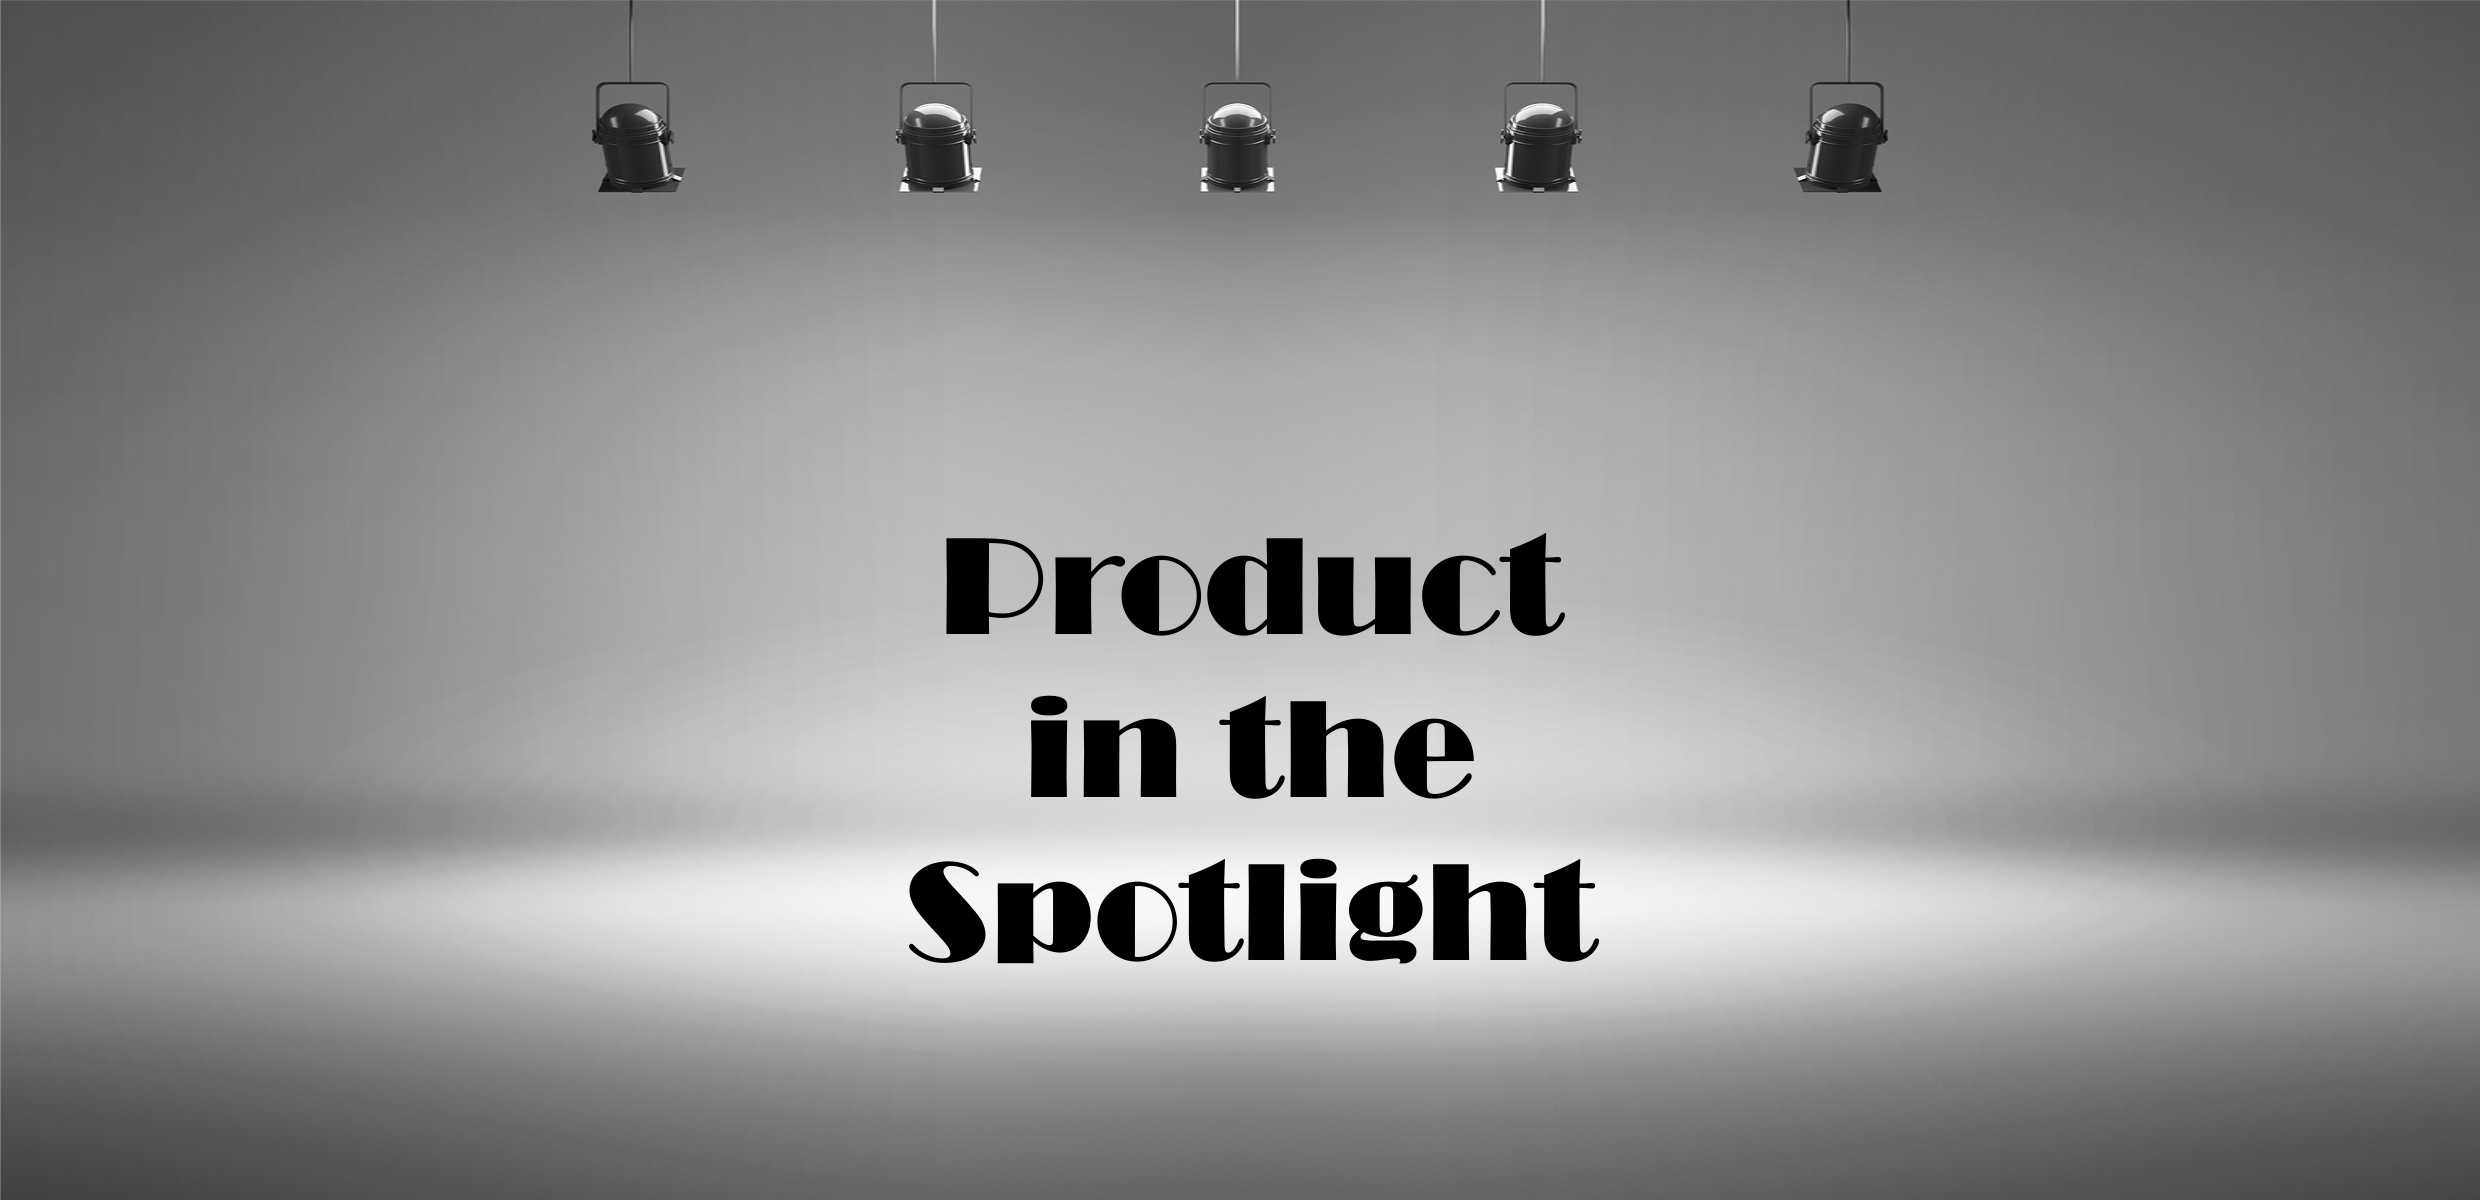 Blog Header image - Product in the Spotlight